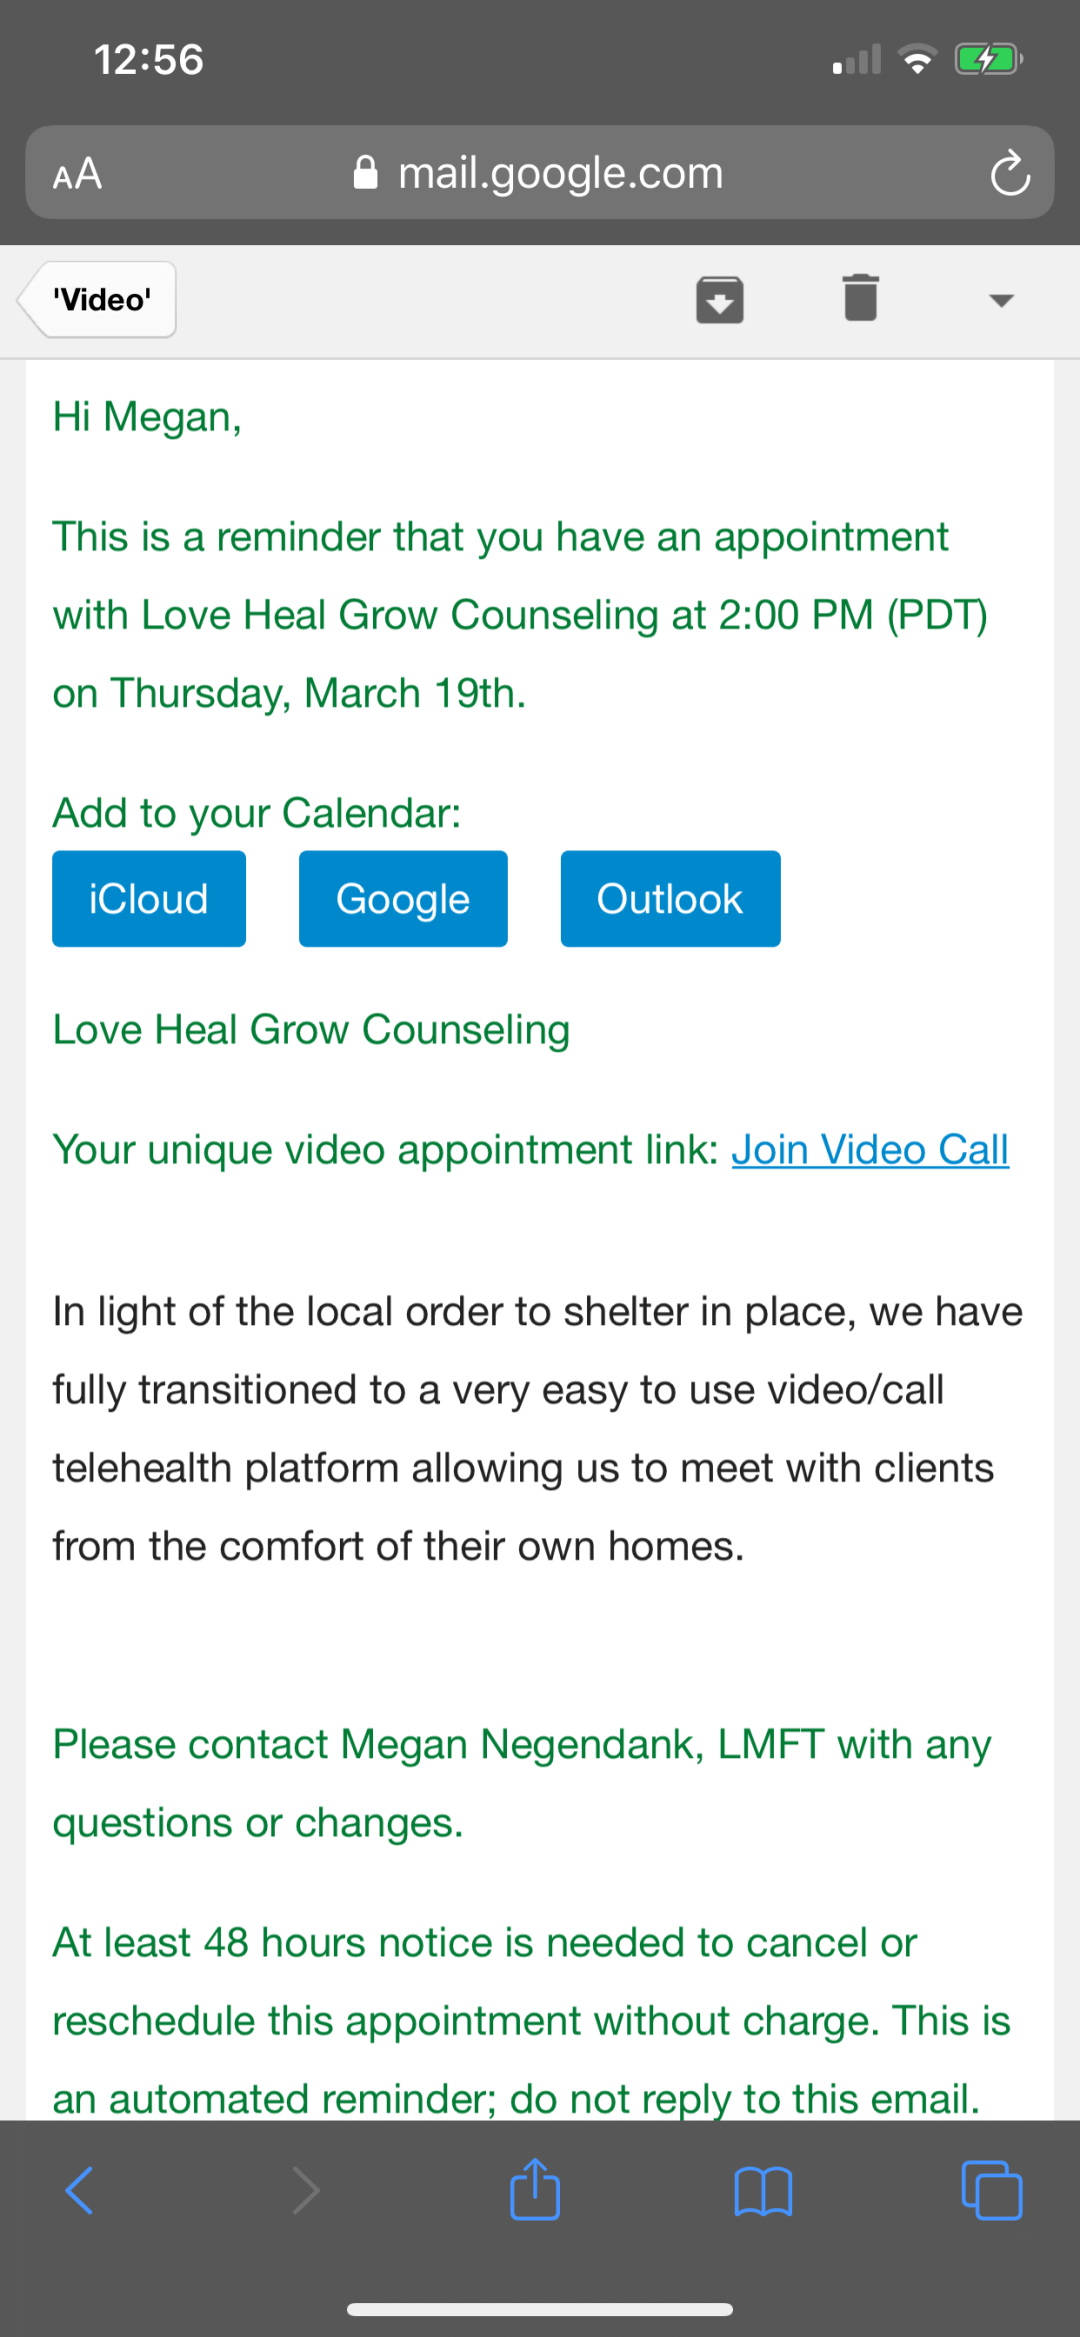 """A screenshot of an email reminder for an online therapy appointment that reads """"Hi Megan, This is a reminder that you have an appointment with Love Heal Grow Counseling at 2:00pm (PDT) on thursday, march 19th: Add to your calendar: iCloud, Google, Outlook, Love Heal Grow Counseling. Your unique video appointment link: Join Video Call"""". We offer online therapy services for the residents of California. Contact an online therapist for support today!"""